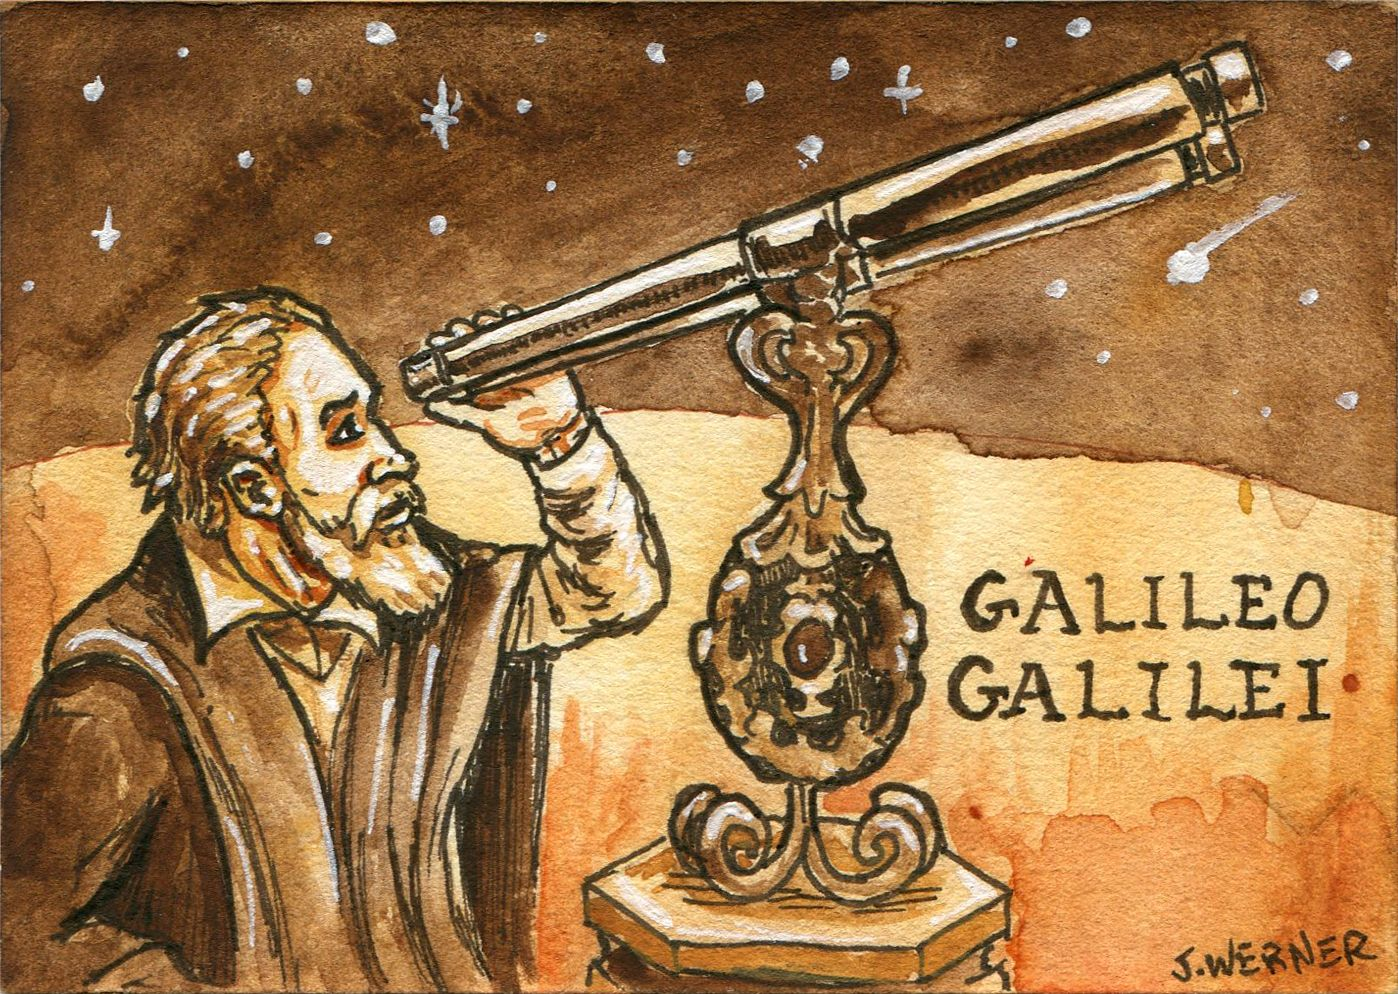 Joshua Werner S Galileo Galilei With Telescope